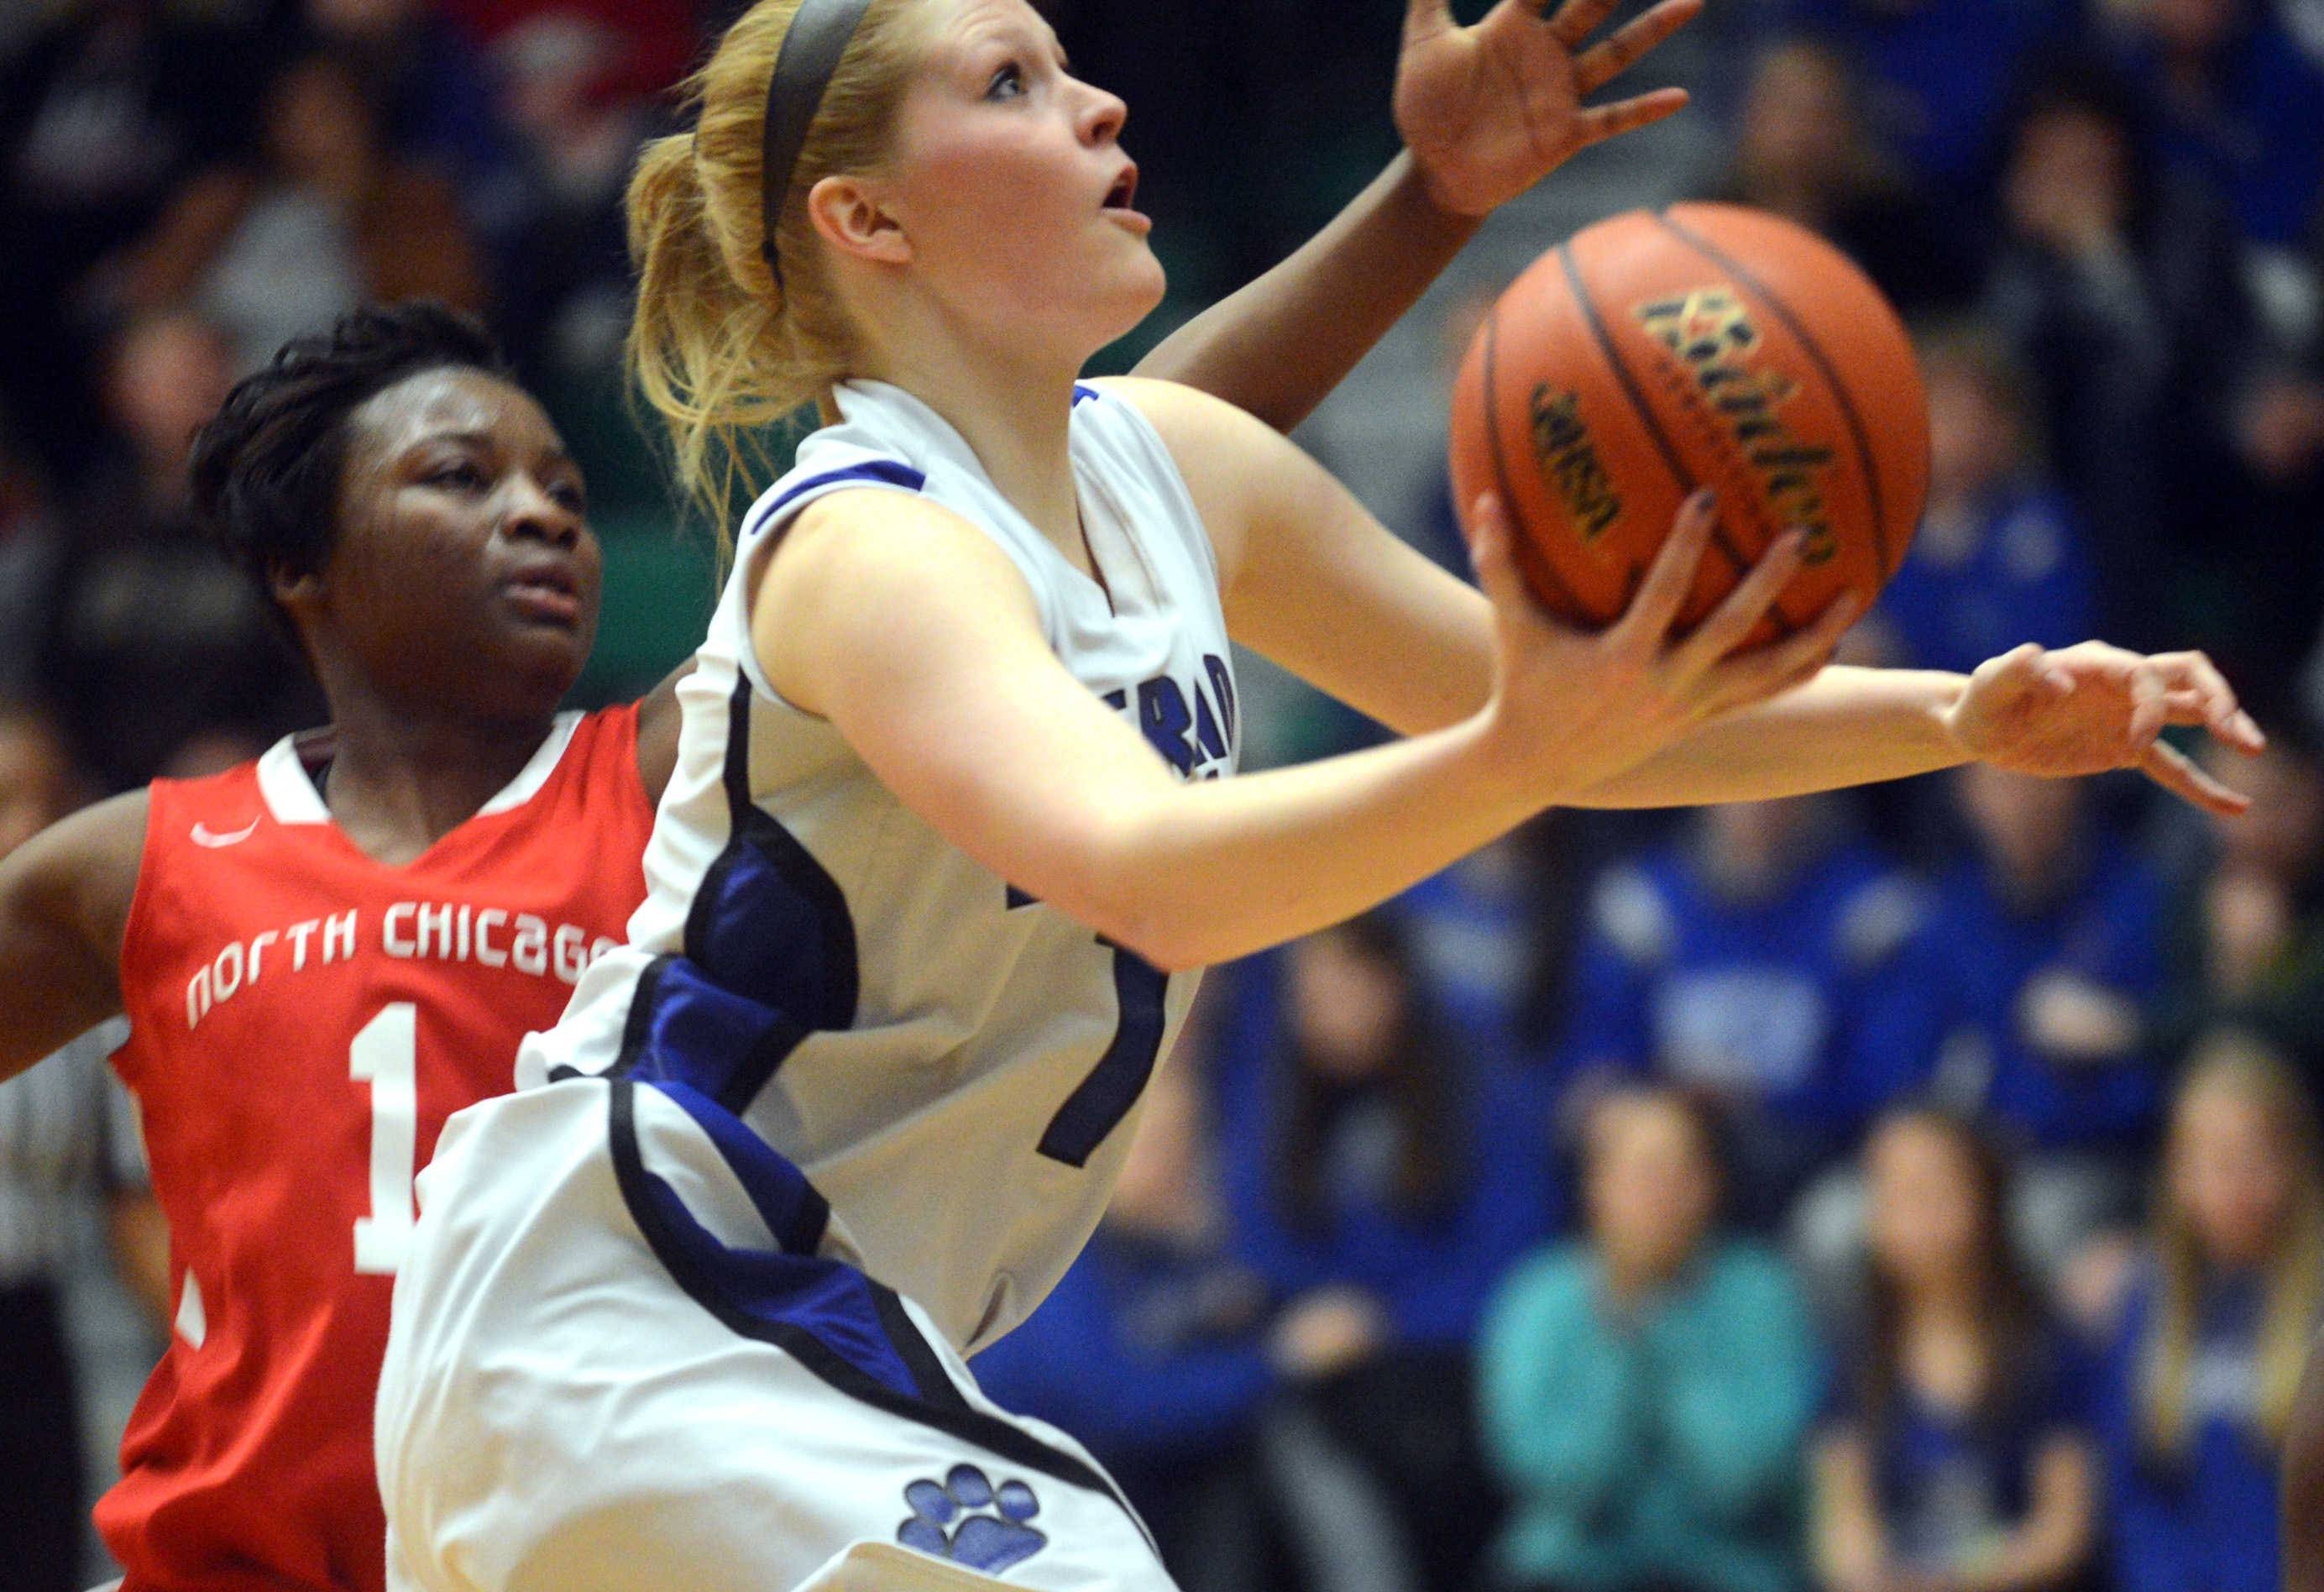 Images: Vernon Hills vs. North Chicago girls basketball